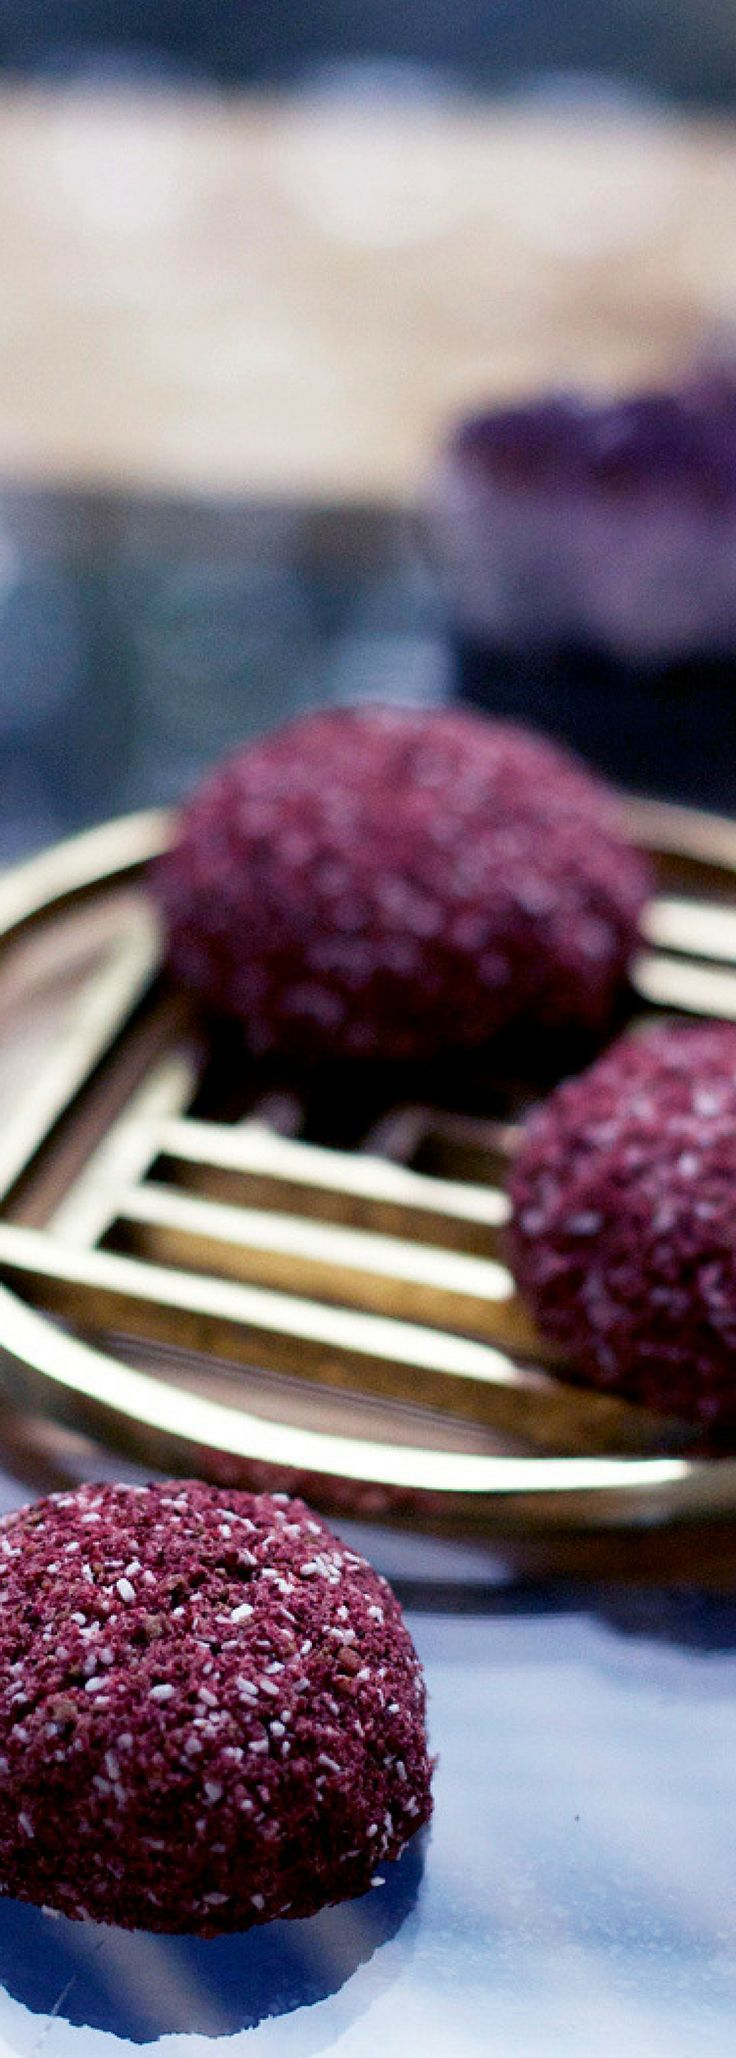 DIY Natural Bath Bomb Recipe. DIY Natural Bath Bomb Recipe. I love the idea of diy bath bombs, but they always use harsh ingredients like food coloring. This one uses all natural beet powder. Vegan and clean beauty!